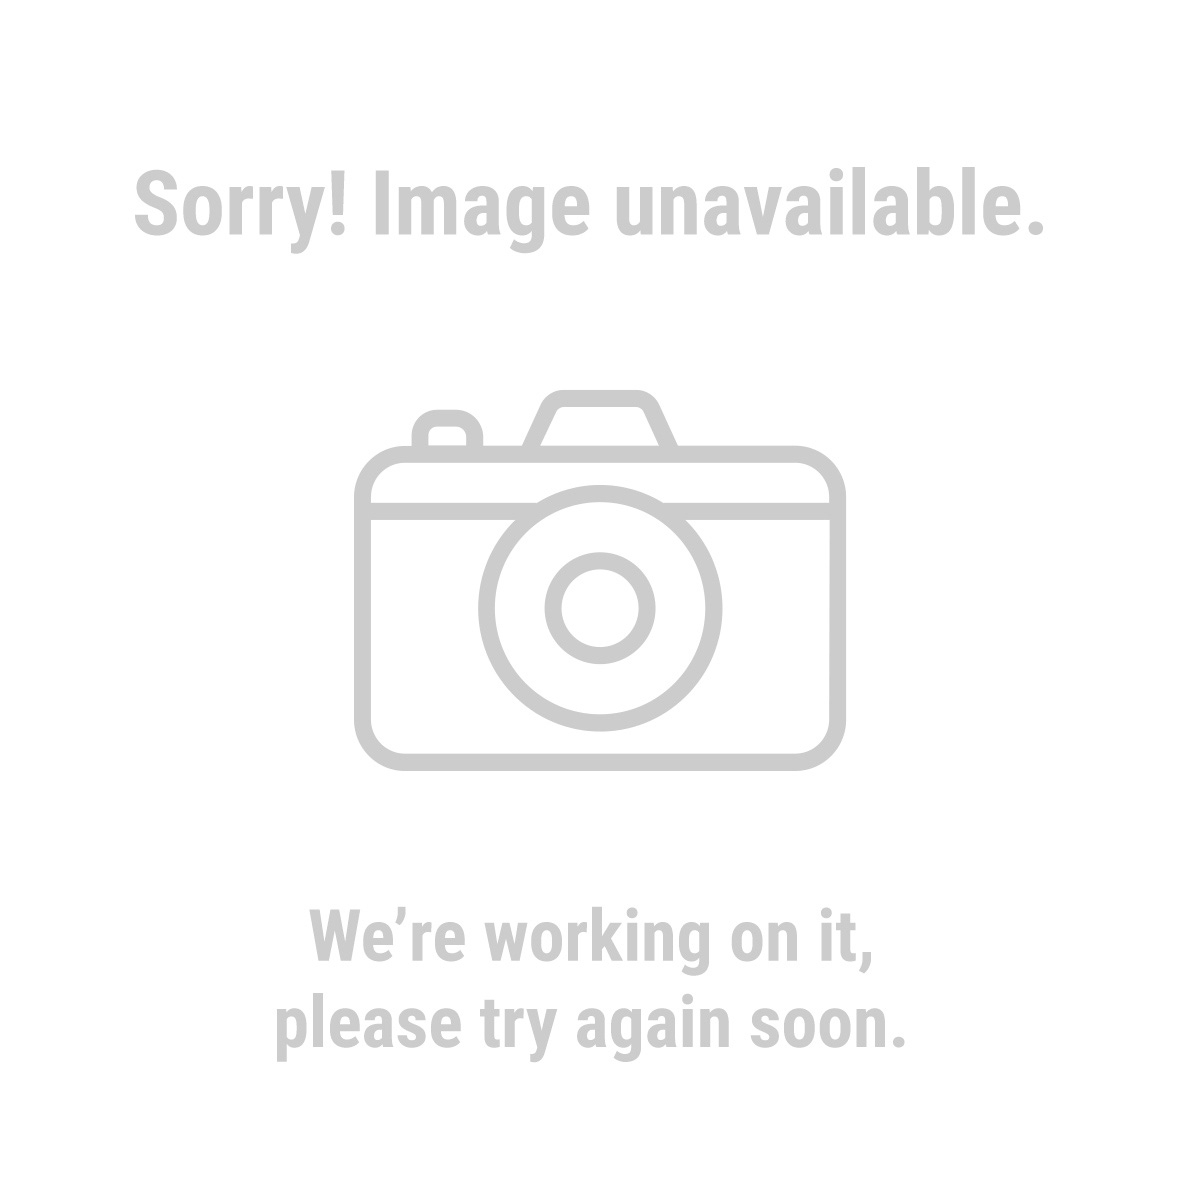 Chicago Electric Power Tools 62421 18 Volt 1/4 in. Cordless Variable Speed Hex Impact Driver